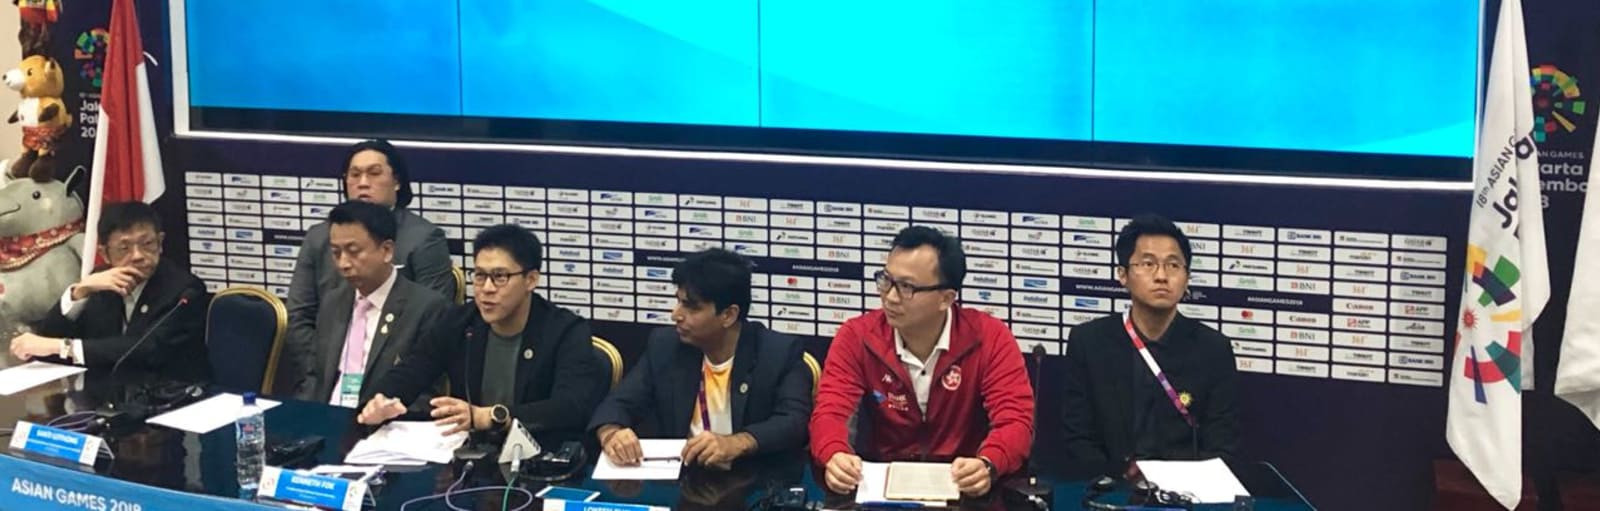 Asian Electronic Sports Federation President Kenneth Fok, left of centre, has expressed his confidence that esports will become an official medal event at the 2022 Asian Games in Hangzhou ©Asian Games 2018